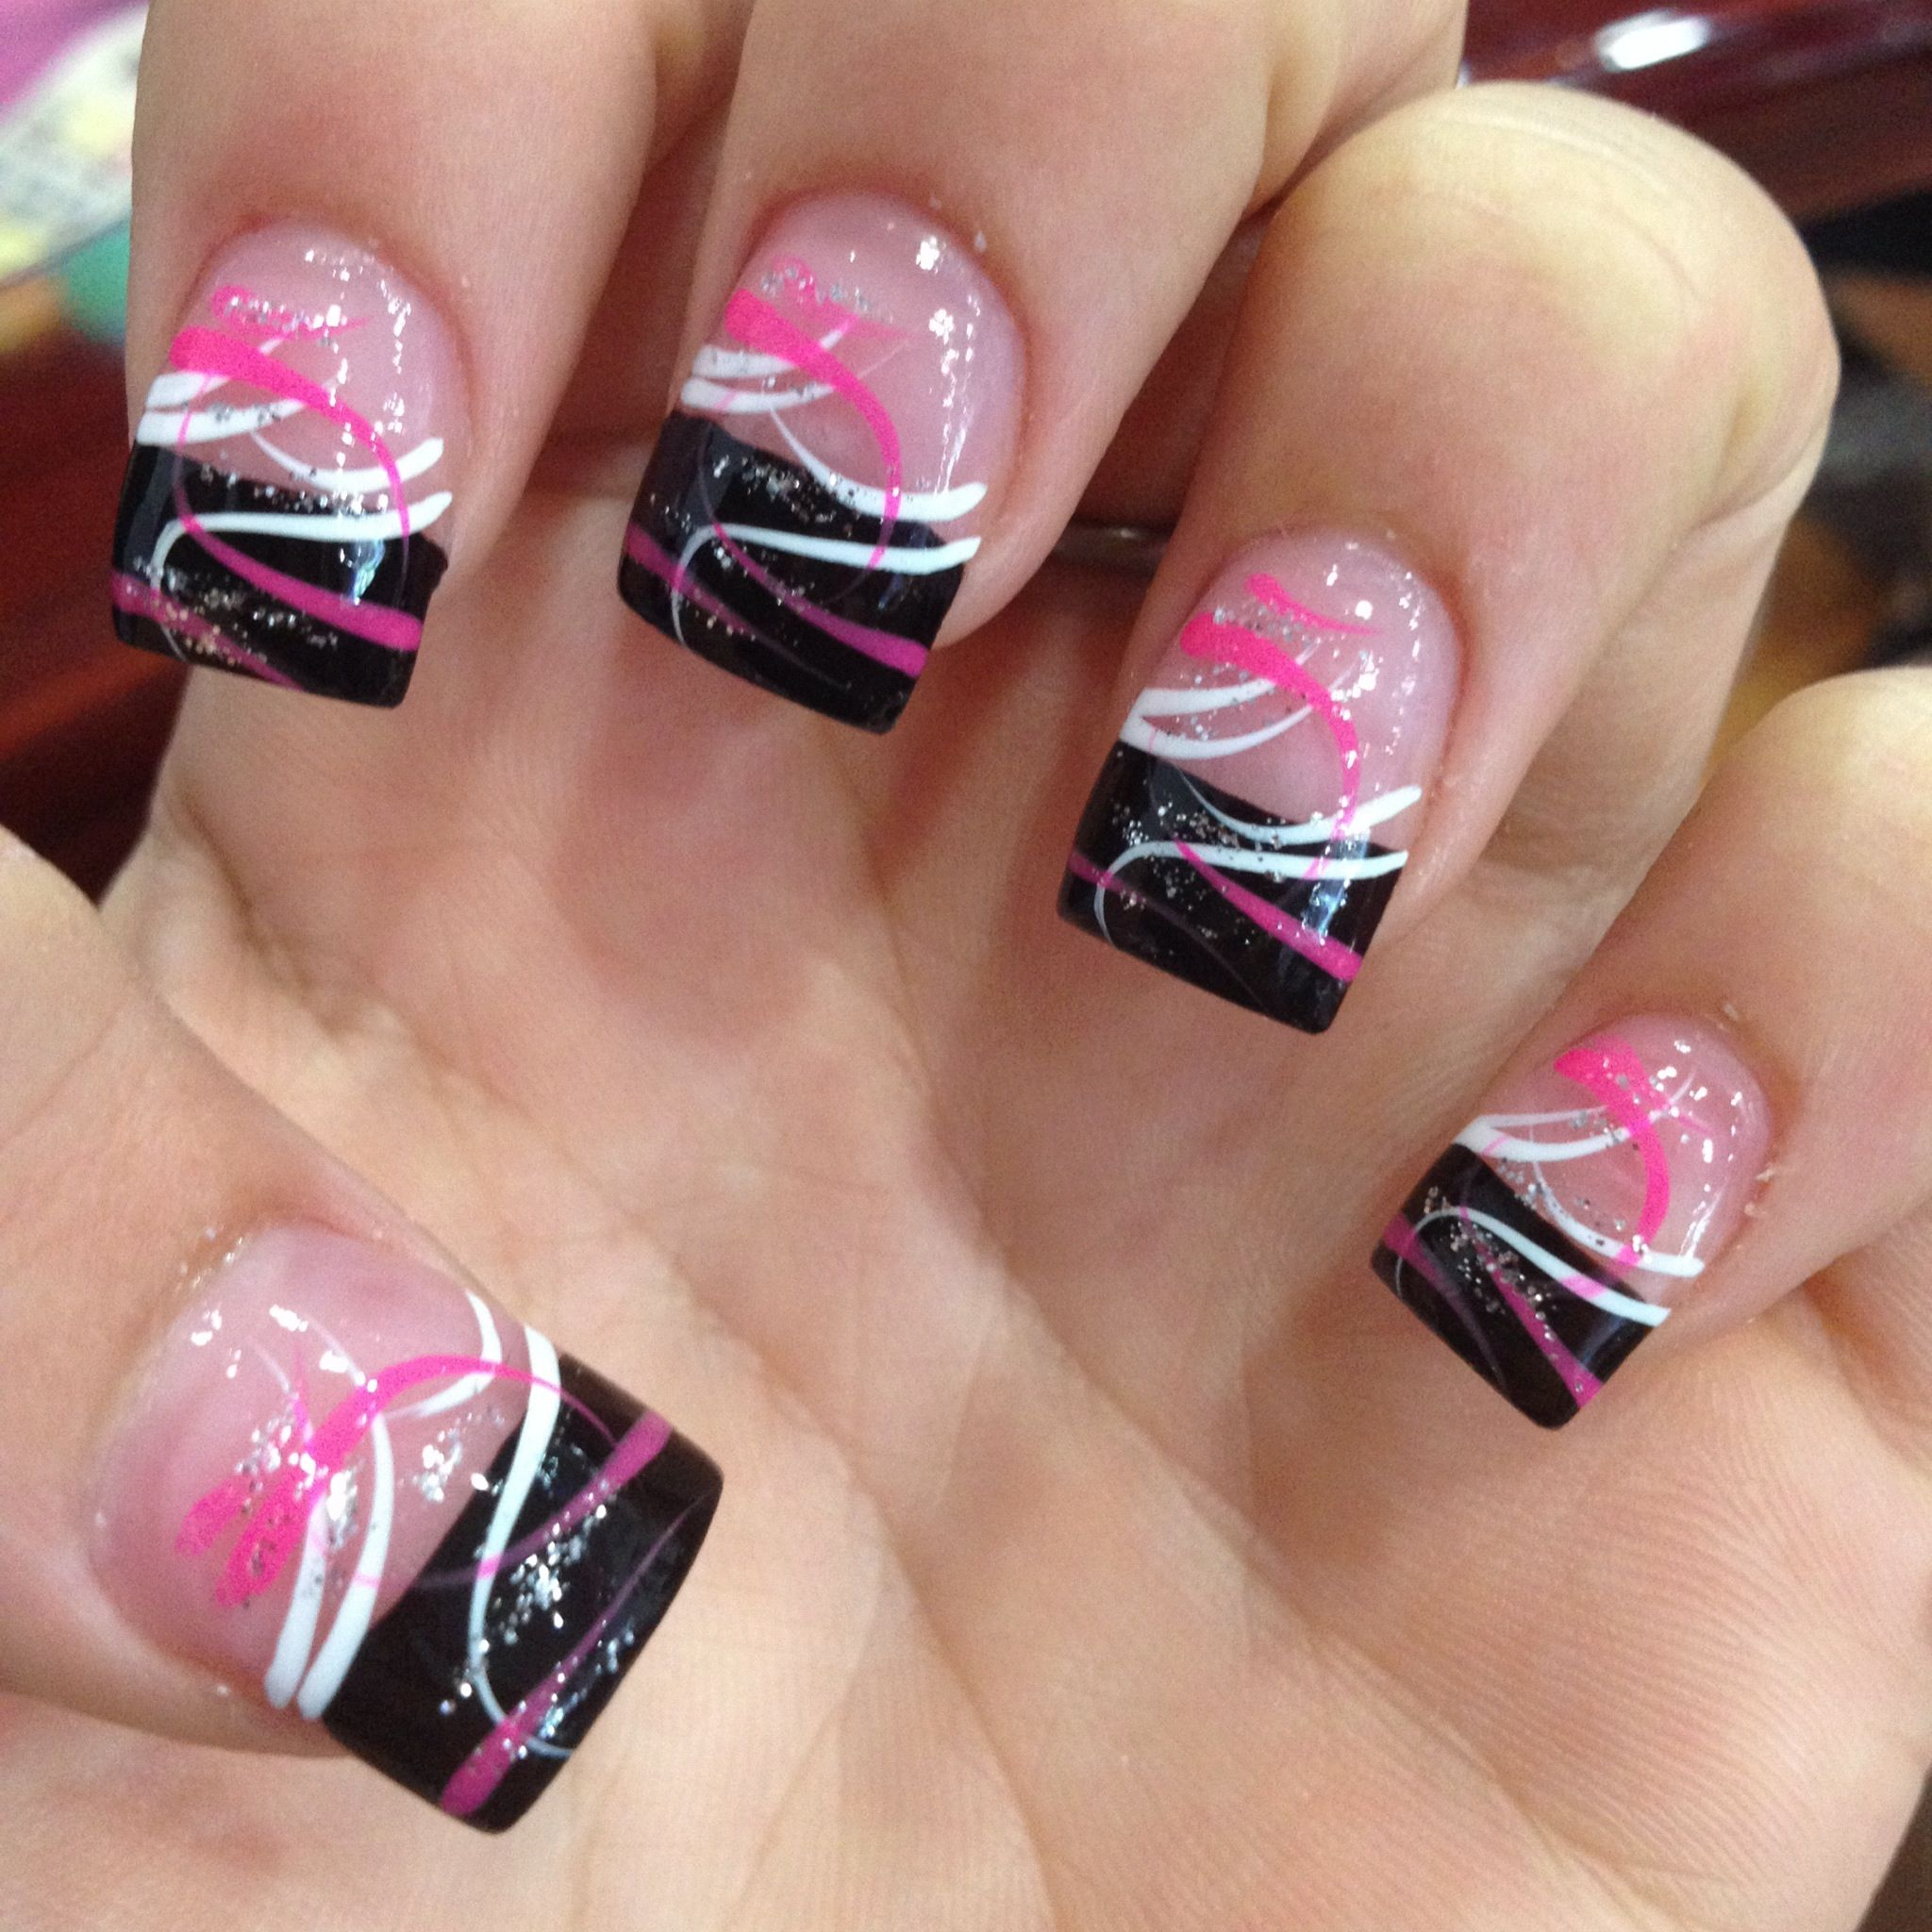 DIY Nail Art techniques 2018: What You Can Do With Nail Dotting Tool ...